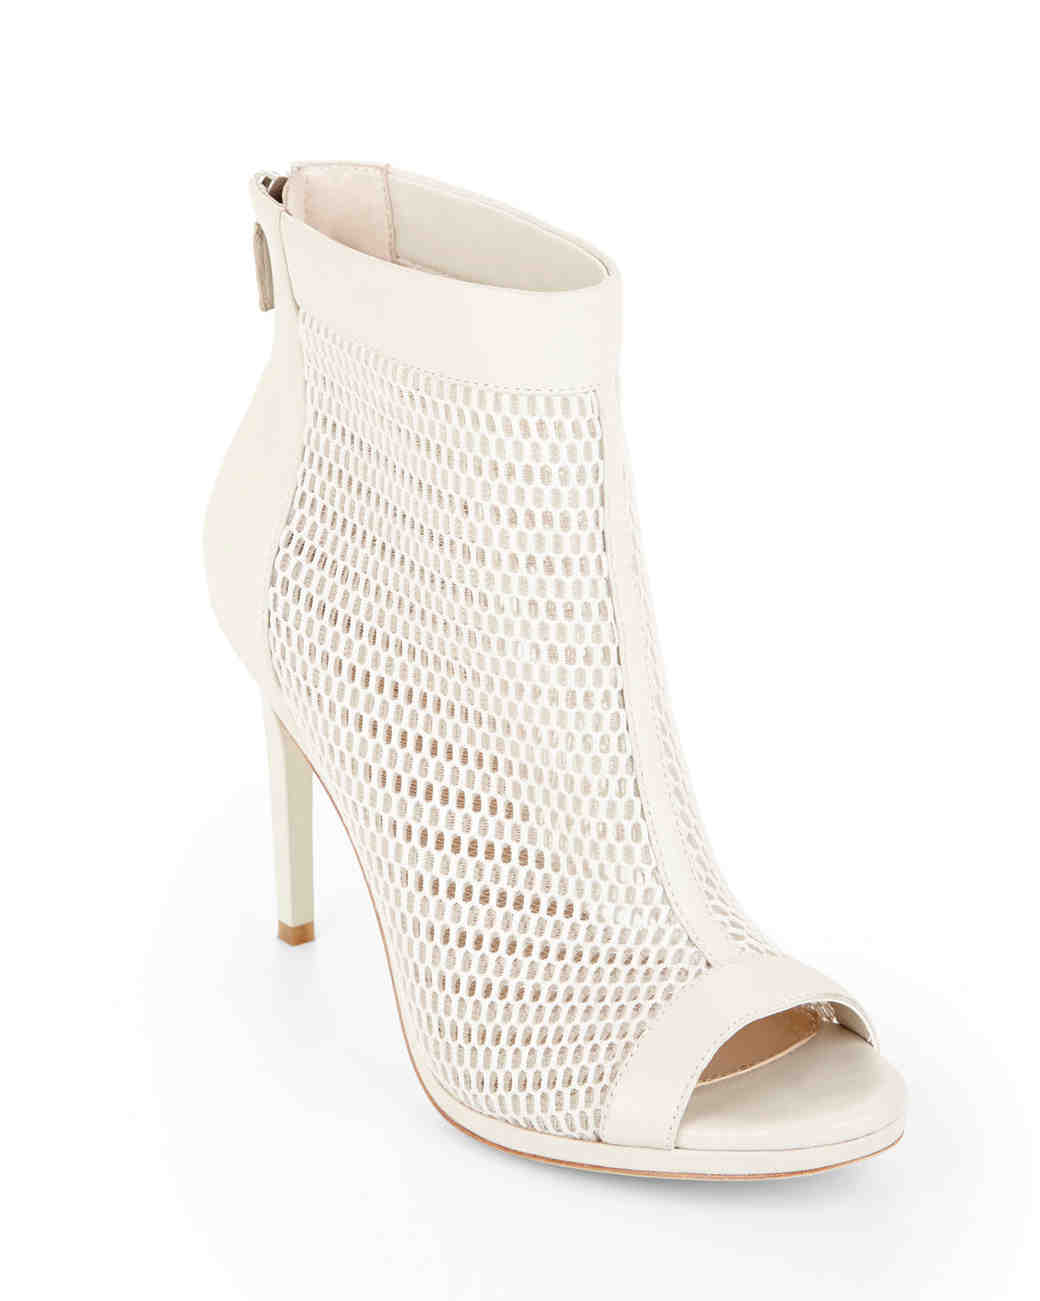 summer-wedding-shoes-bcbg-goal-mesh-bootie-0515.jpg